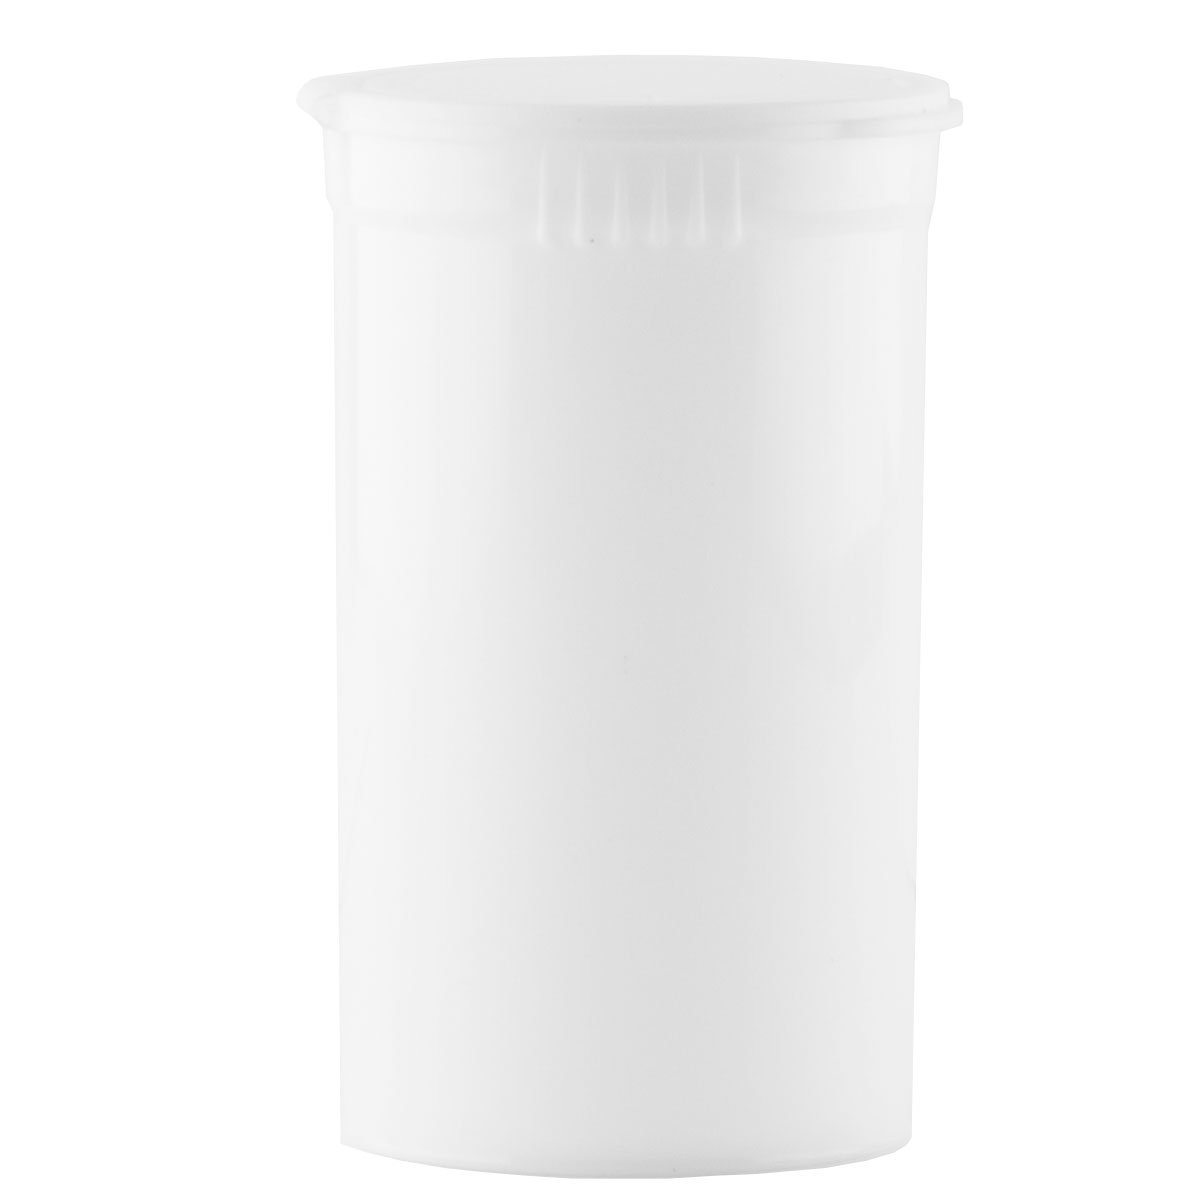 Child Resistant Pop Top Containers - 1 Case (White, 19 Dram)